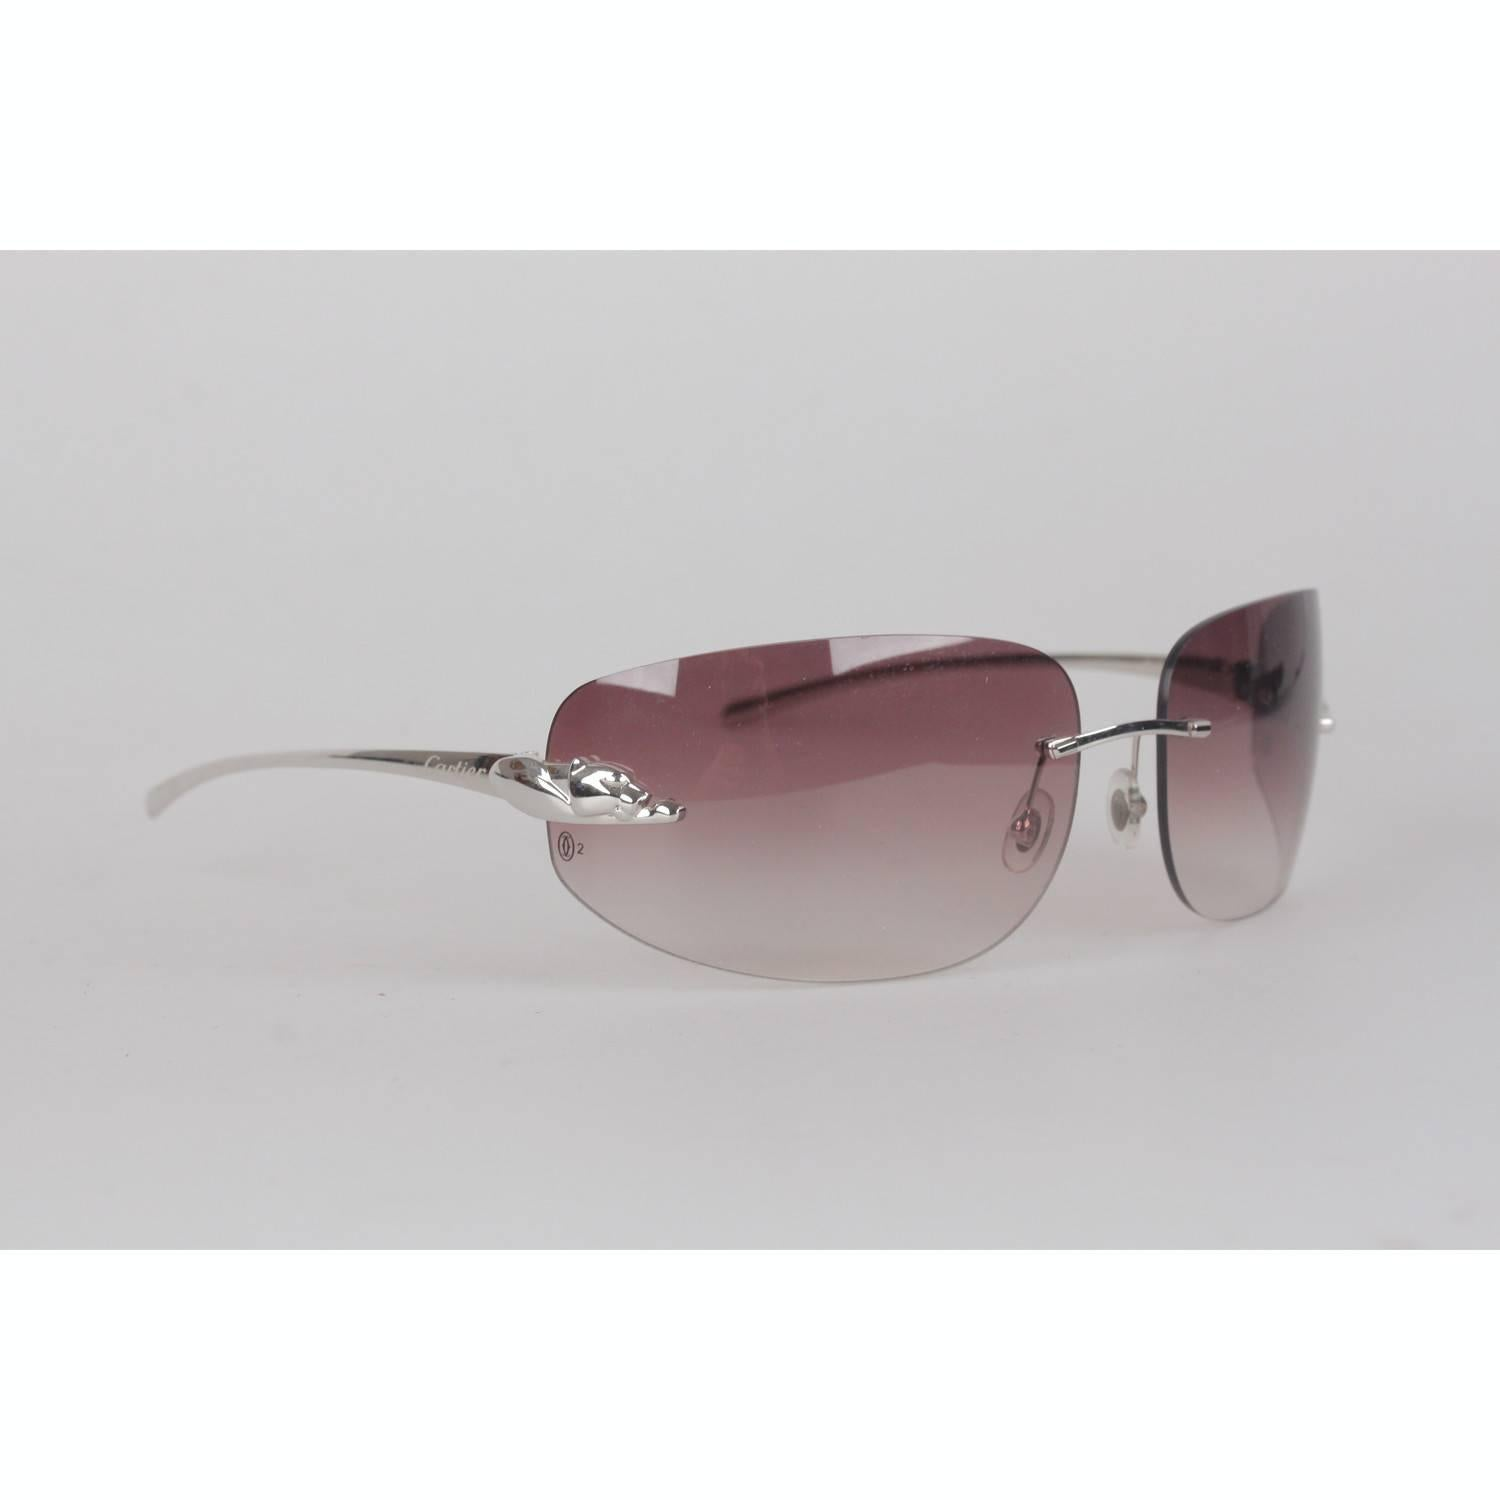 4272449944d Panthère De Cartier Rimless Sunglasses « One More Soul